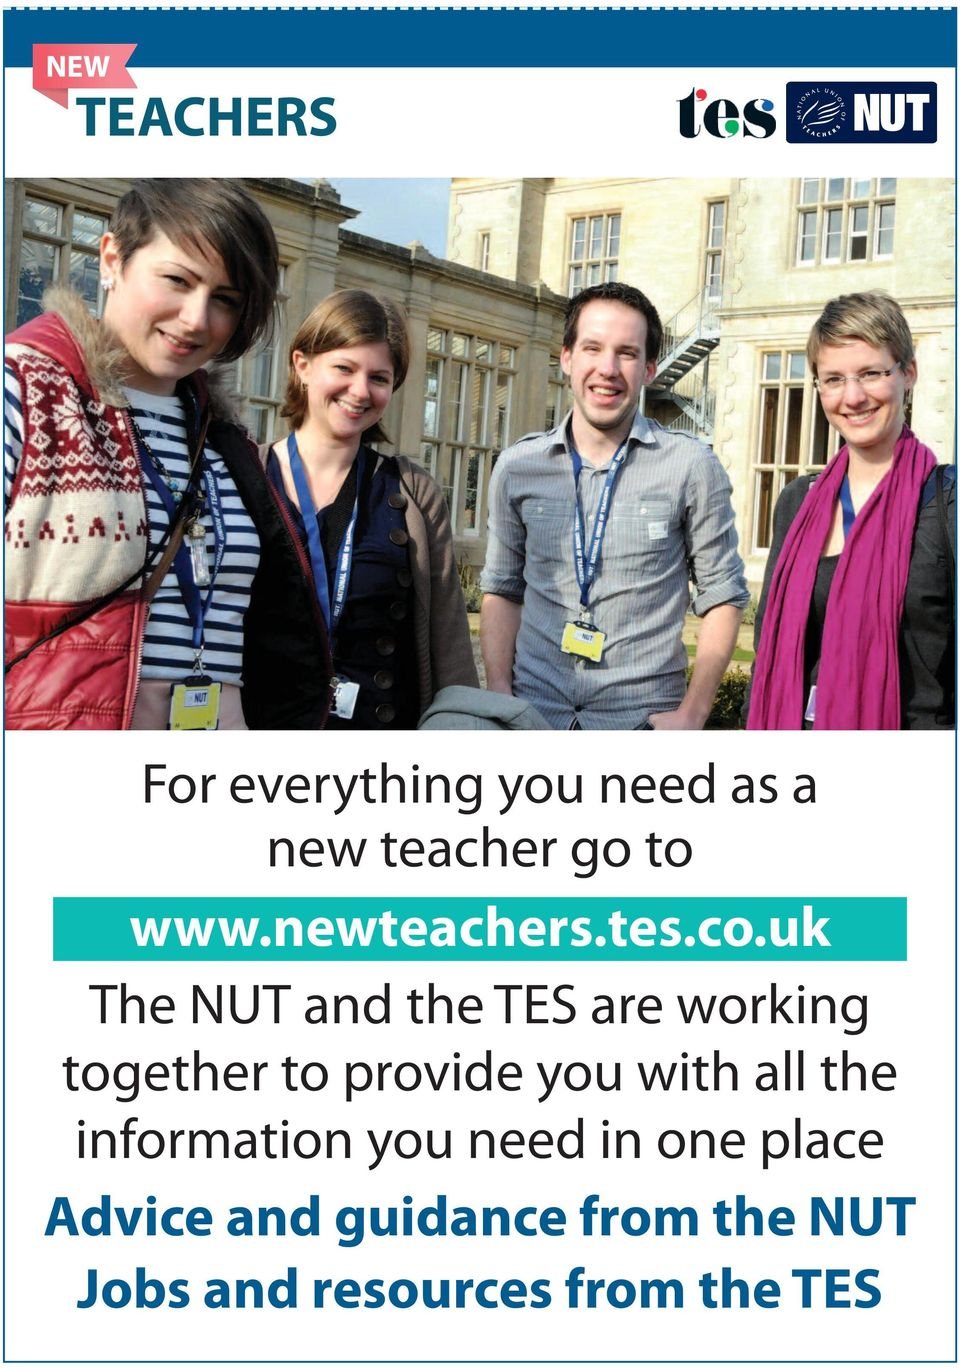 uk The NUT and the TES are working together to provide you